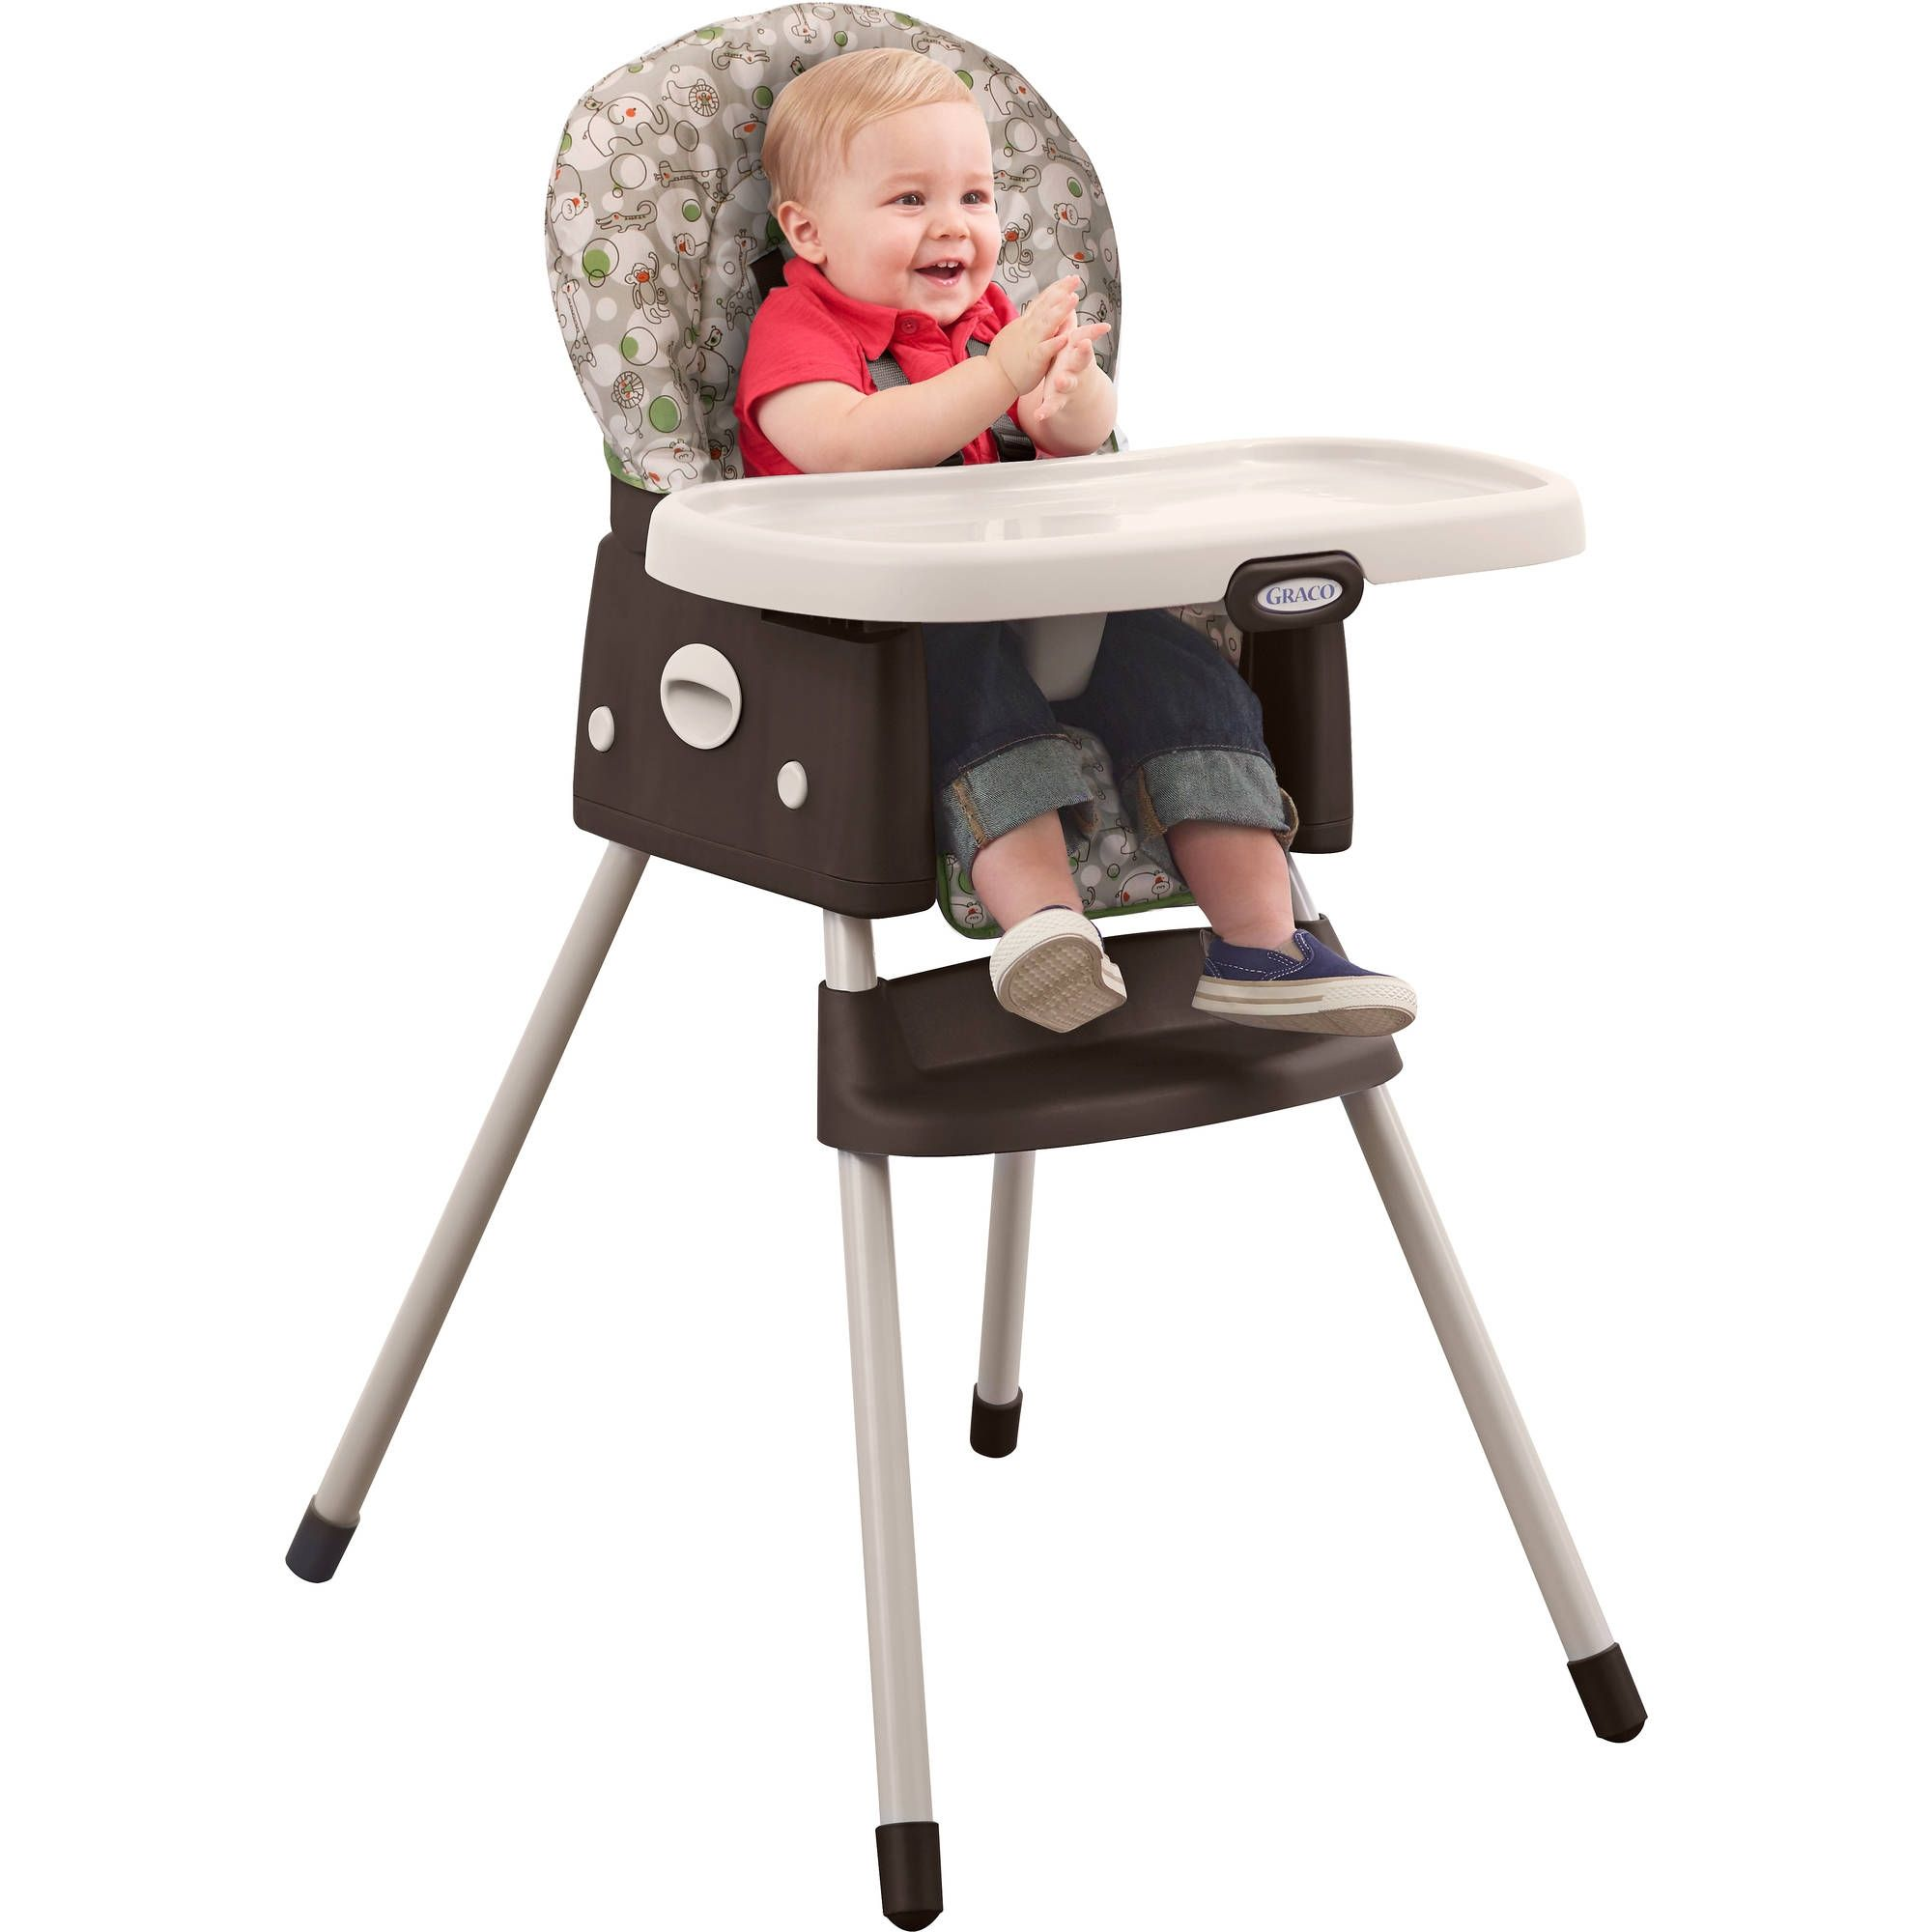 Target Childrens Chair Toddler High Chair Target Check Now Blog